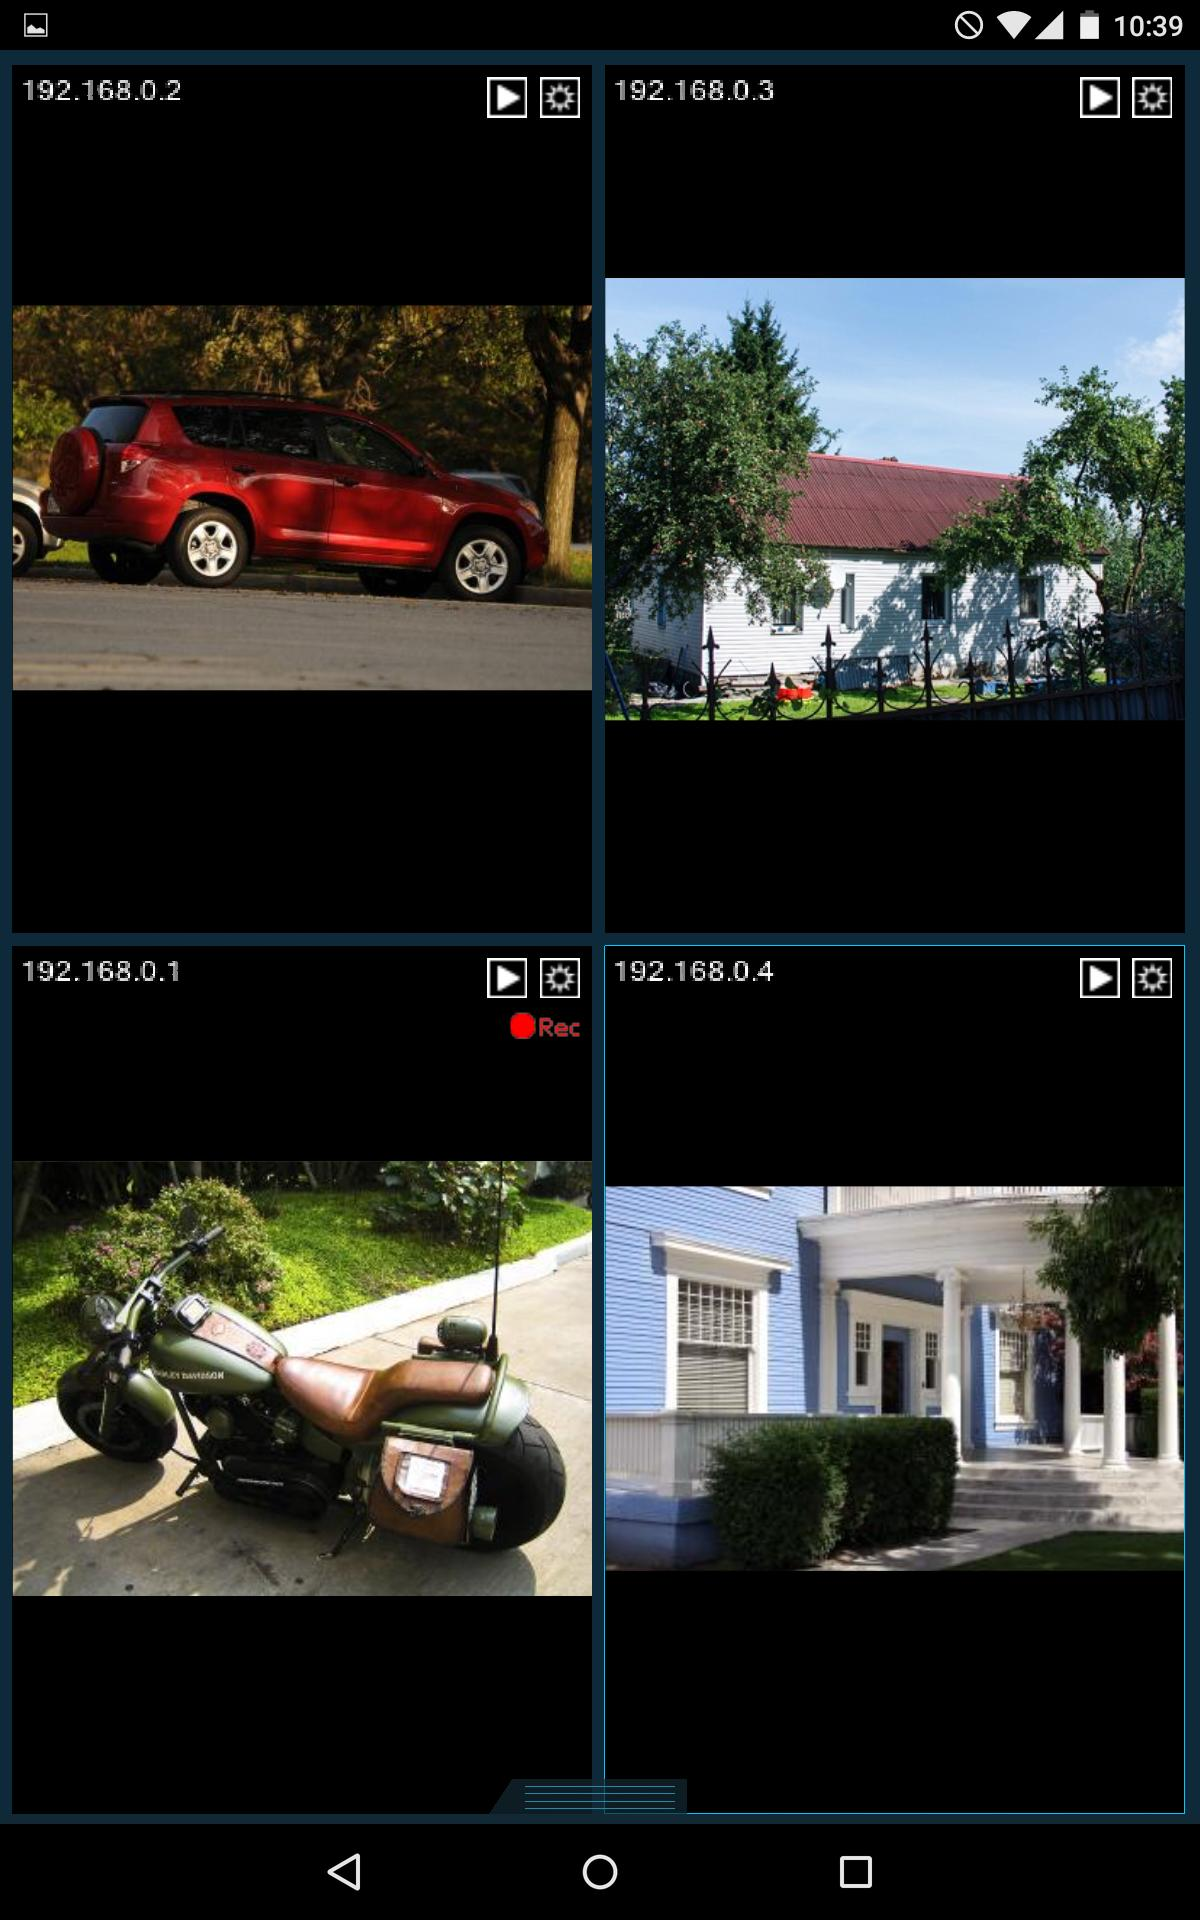 Client part only) Xeoma Video Surveillance for Android - APK Download